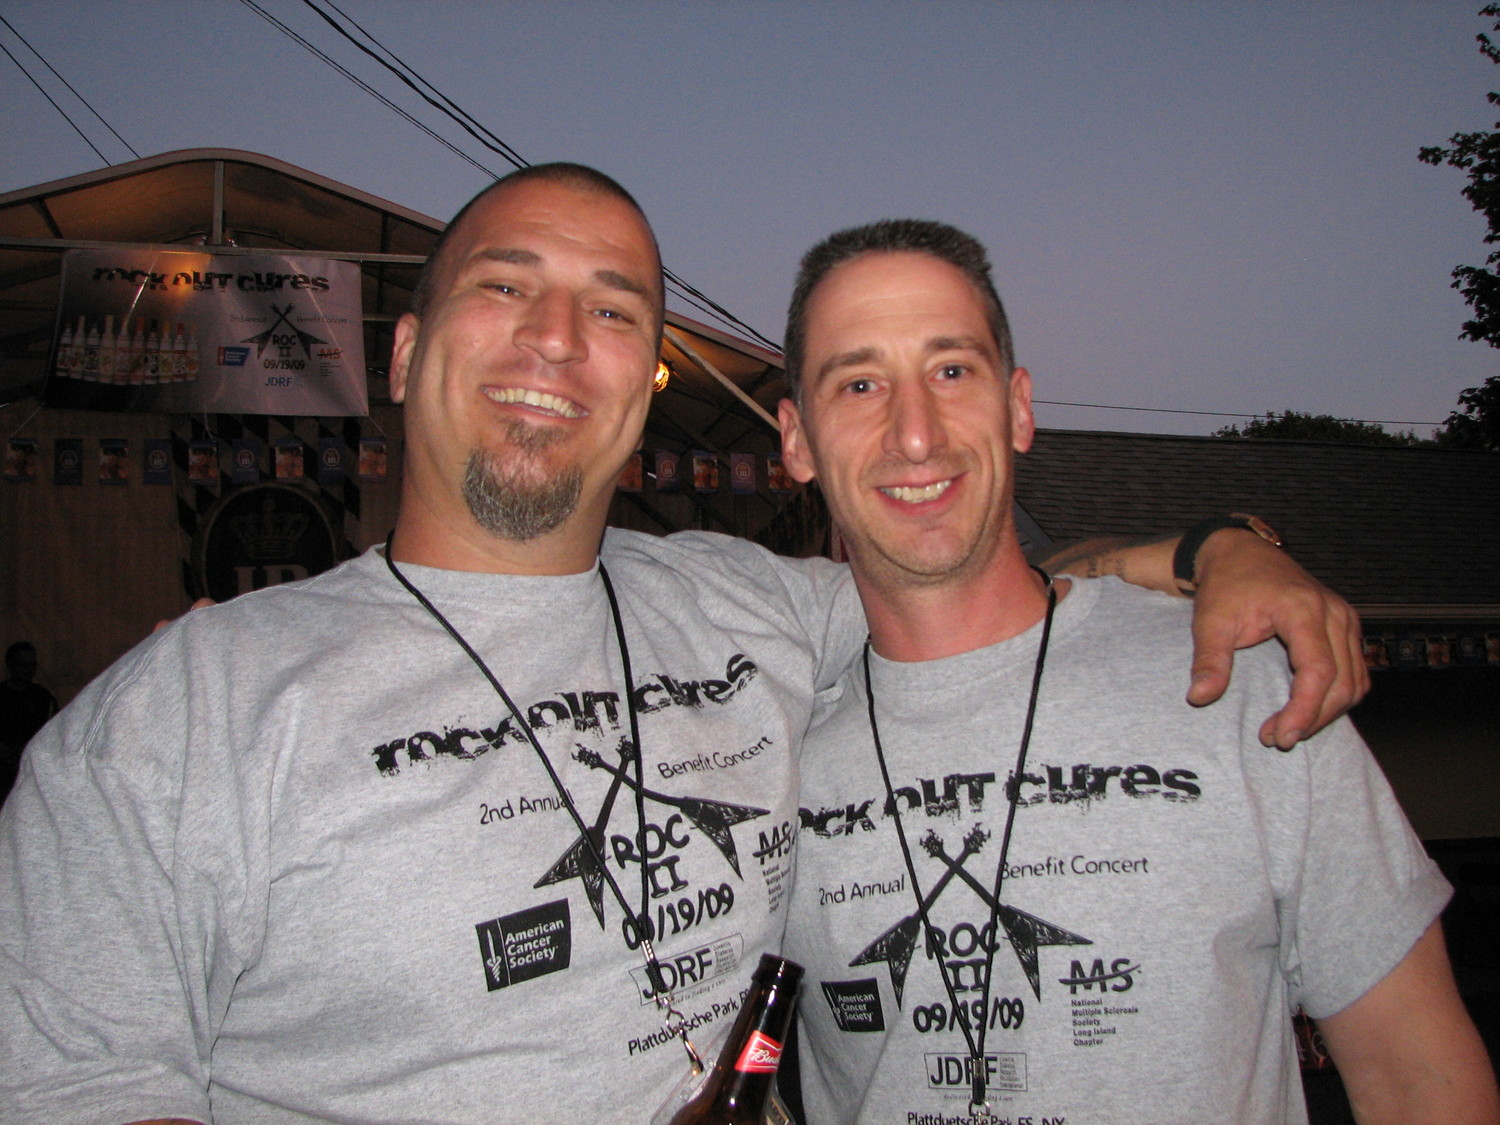 Rock Out Cures founders James Gangone, and Bryan Mayer came up with the idea for a benefit in 2008.